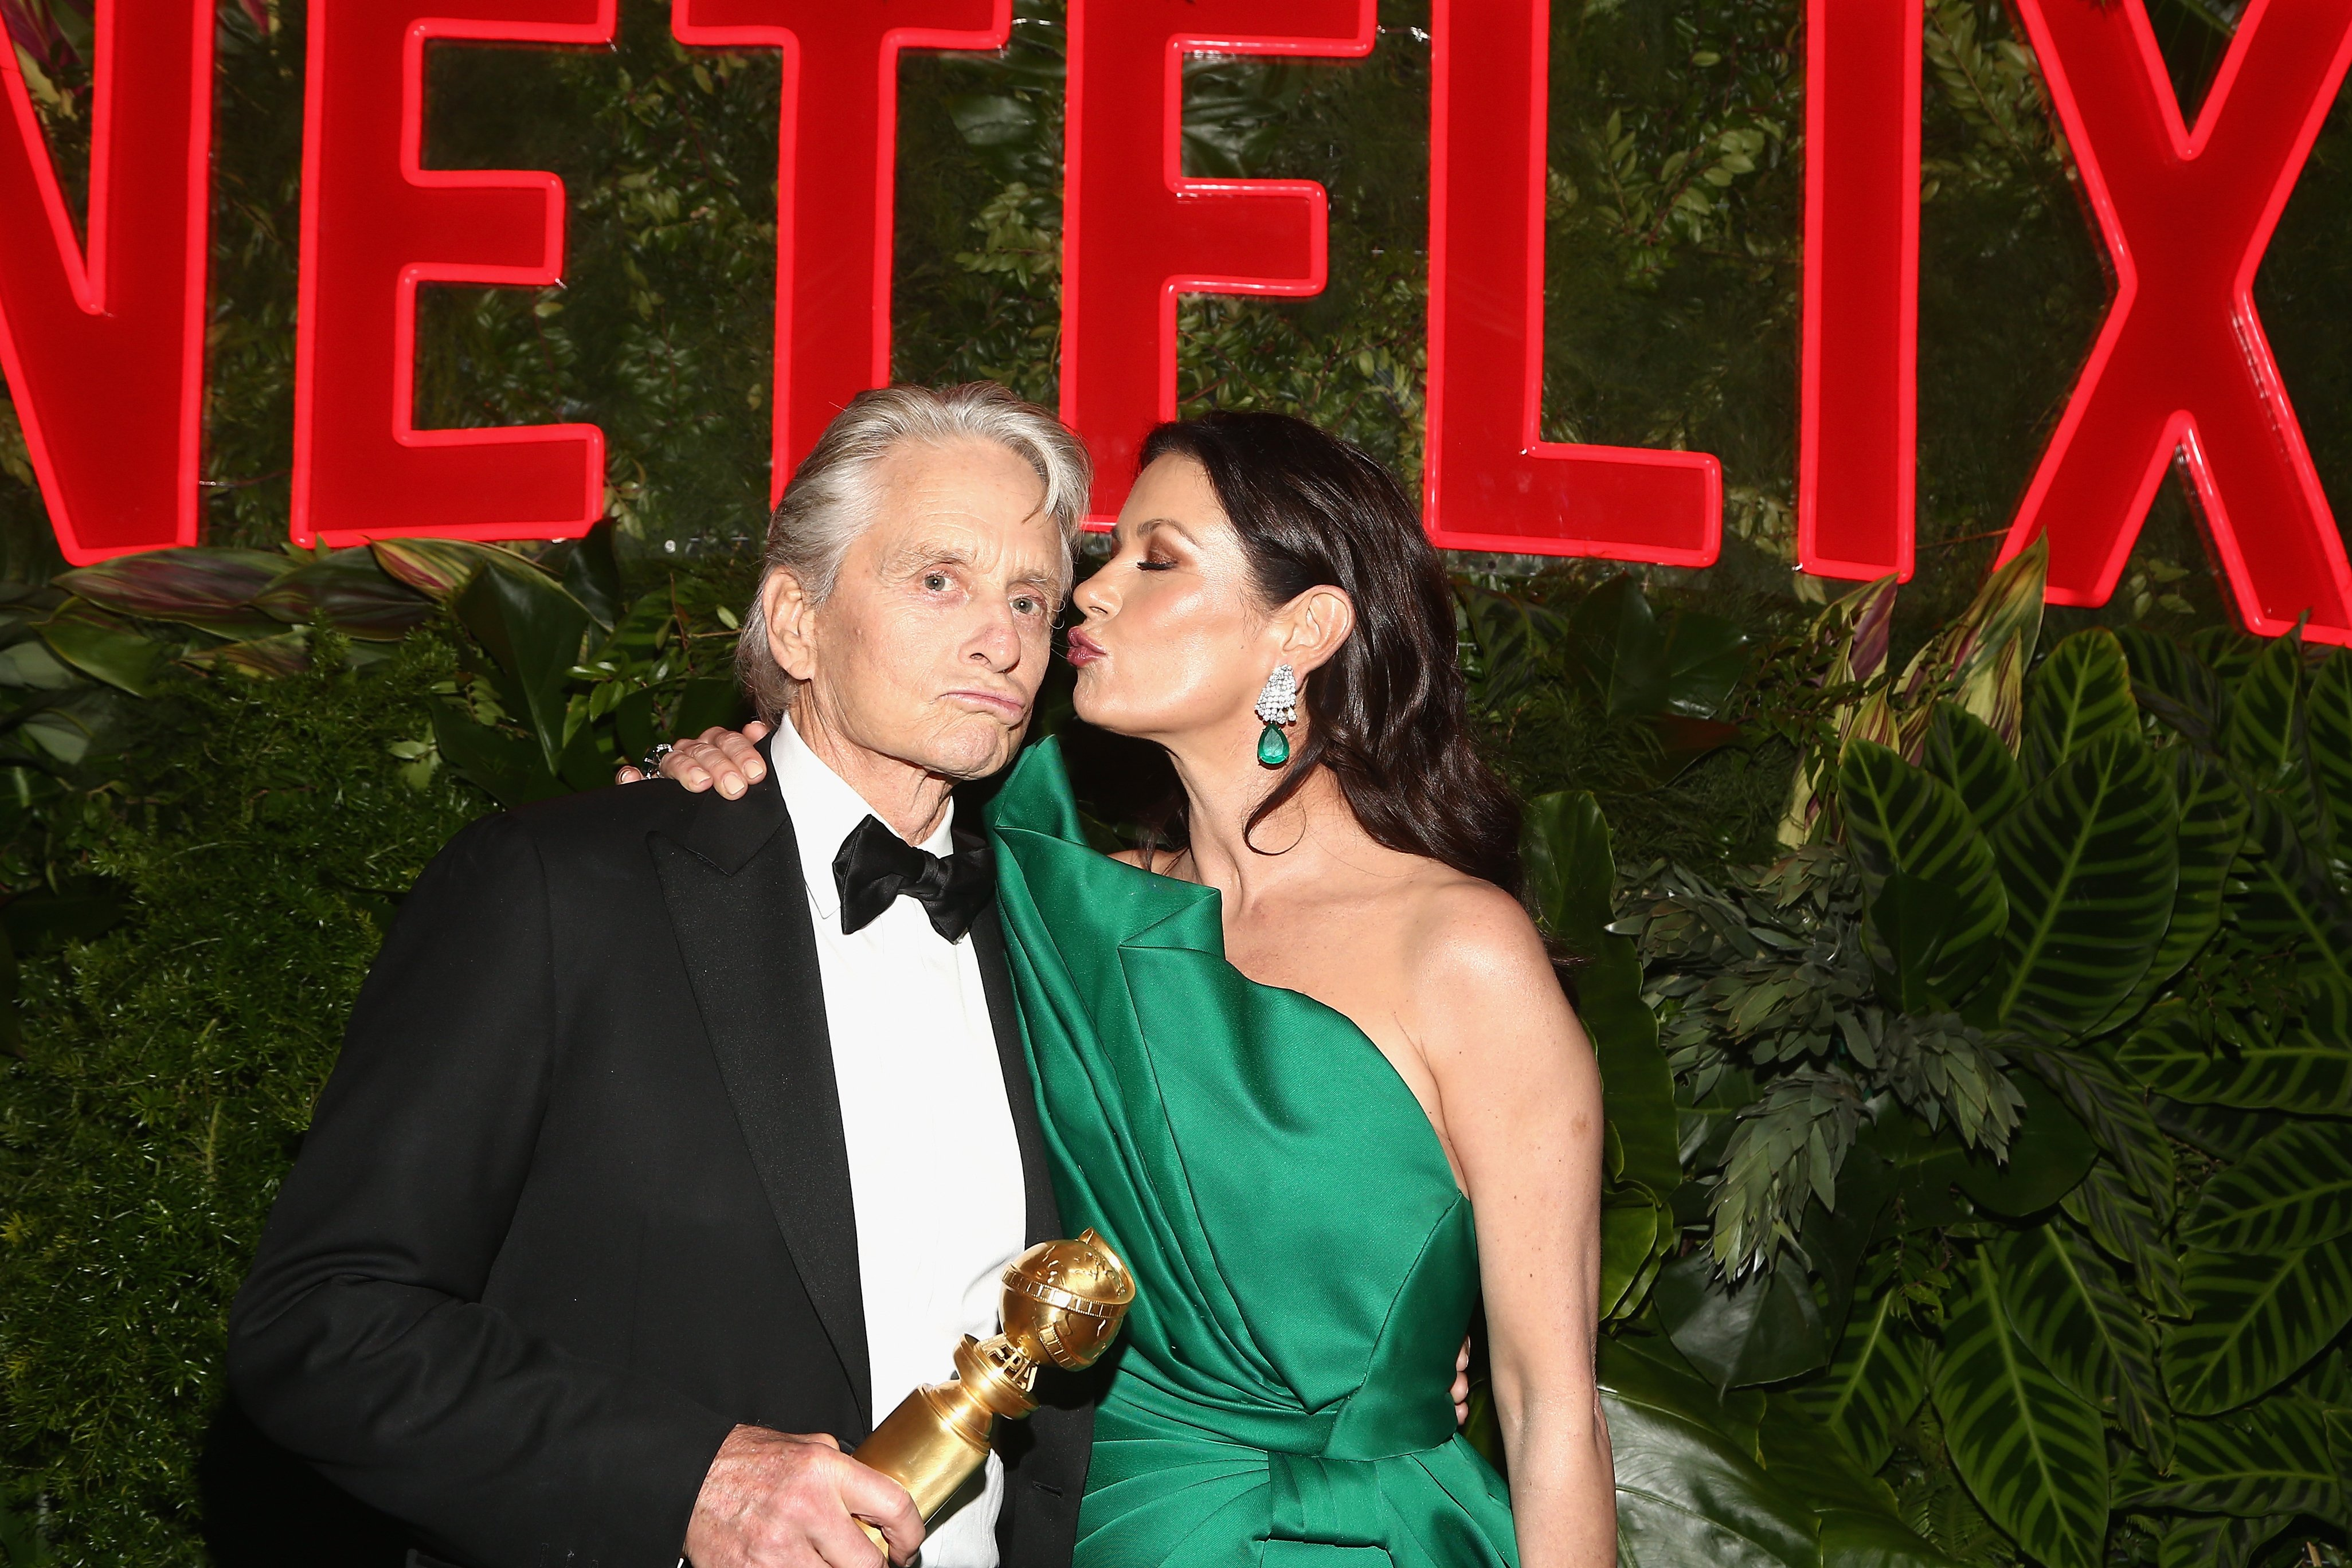 Image Credits: Getty Images / Tommaso Boddi | Michael Douglas (L) and Catherine Zeta-Jones attend the Netflix 2019 Golden Globes After Party on January 6, 2019 in Los Angeles, California.